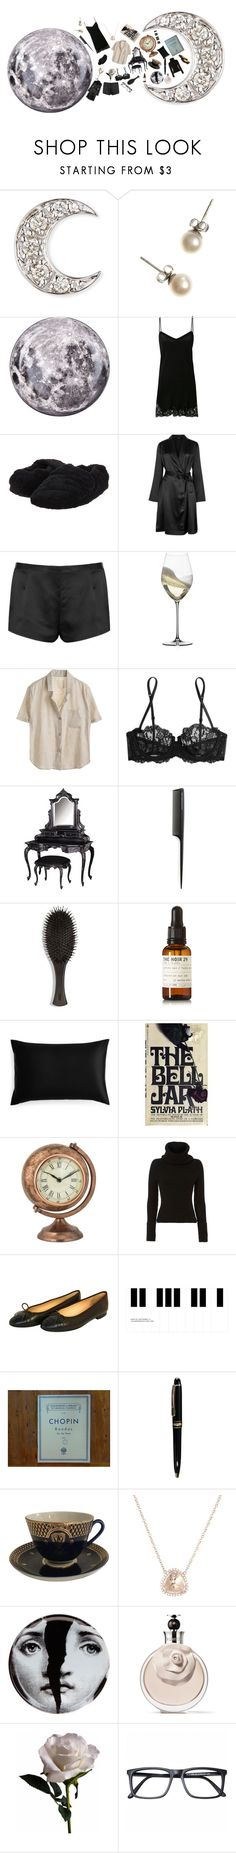 """""""Crescent Moon night."""" by ladyofthelastcentury ❤ liked on Polyvore featuring Sydney Evan, J.Crew, Diesel, La Perla, Acorn, Riedel, GHD, Oribe, Le Labo and Slip"""